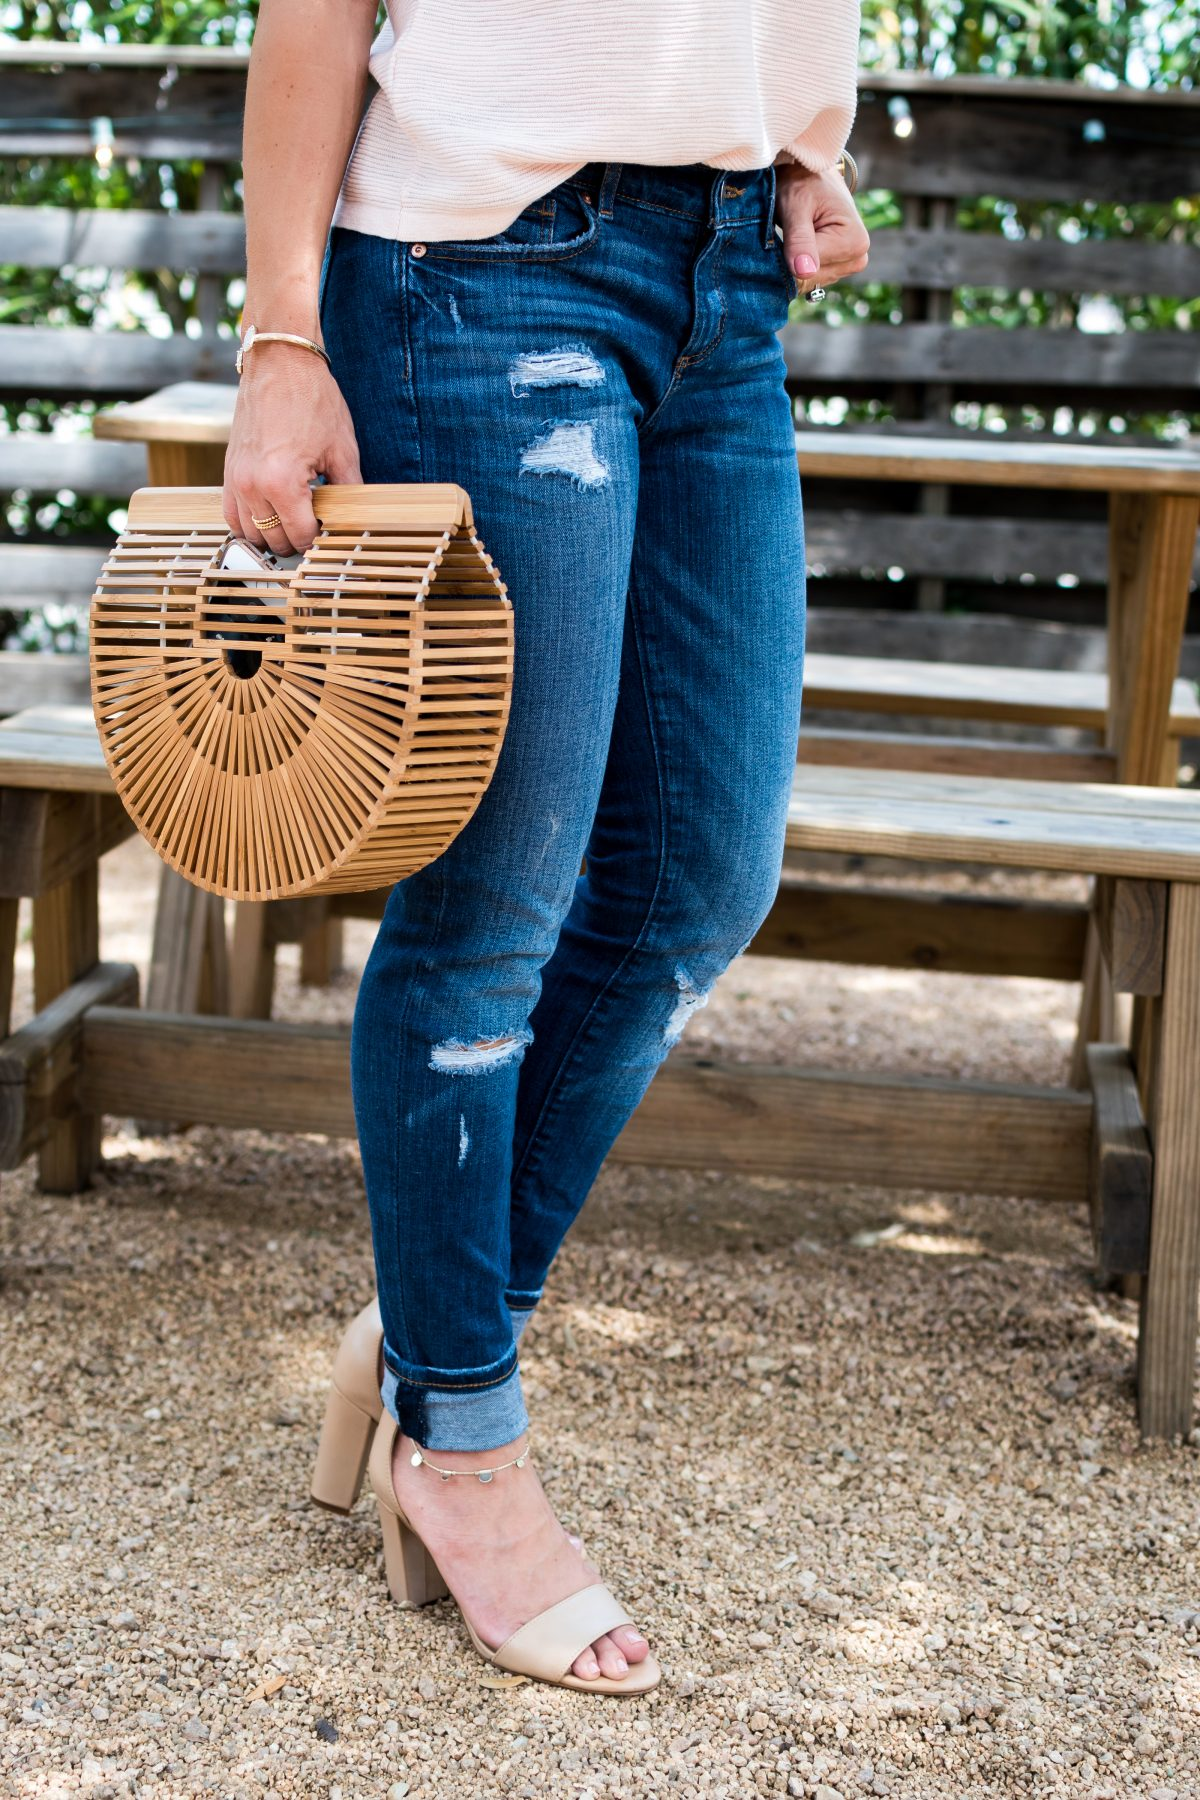 Spring Outfit- pink flutter sleeve top with distressed jeans, wooden bag, and heels